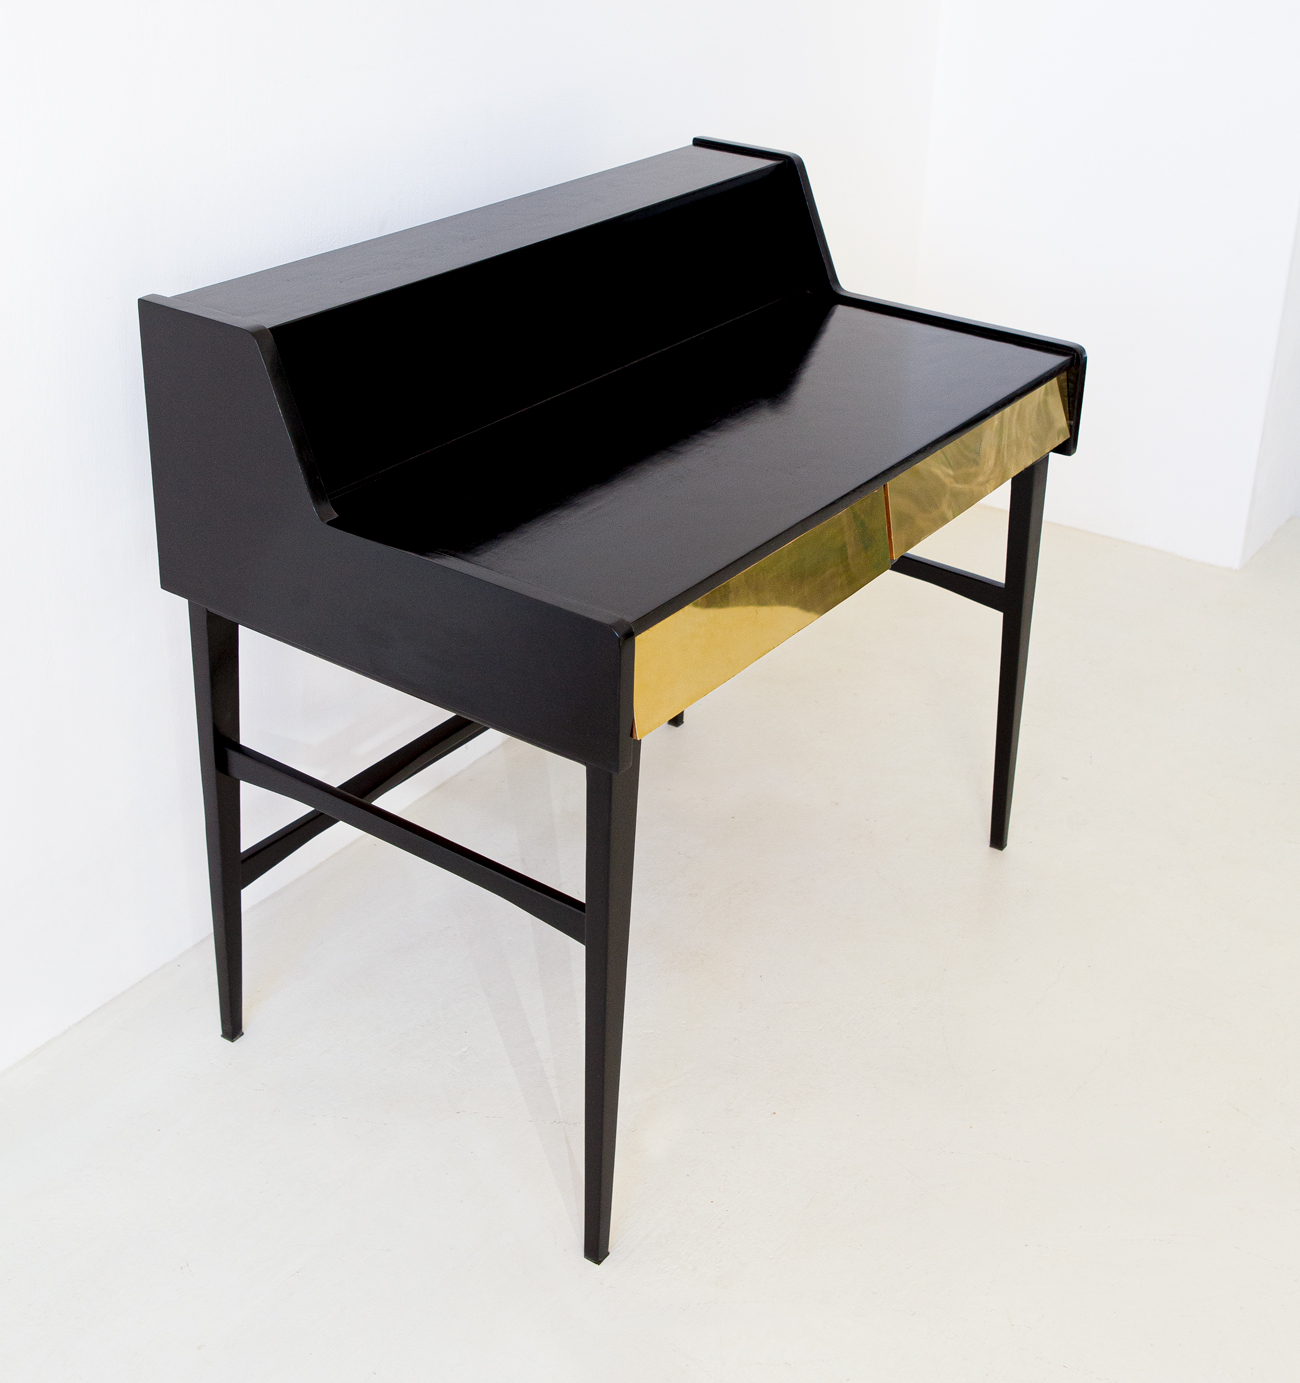 1950s-black-polished-wood-and-brass-desk-4-dt34